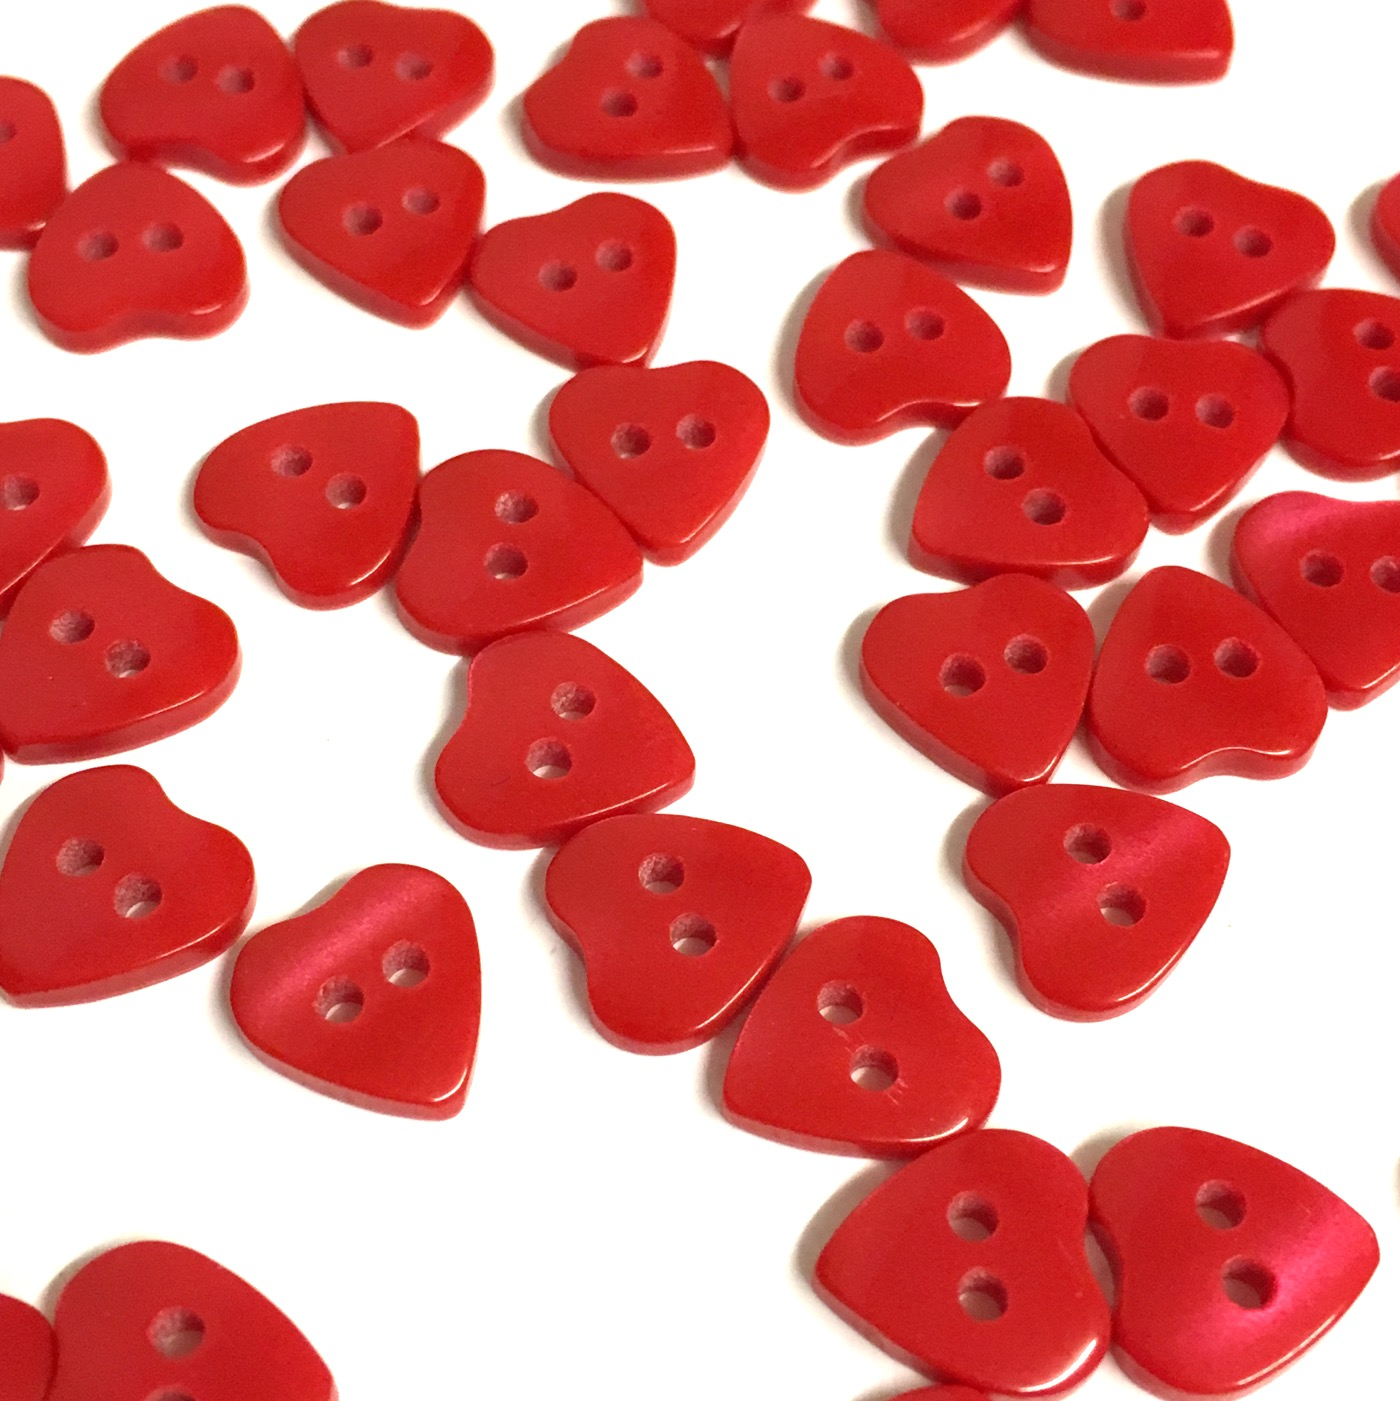 10 x 10mm mini opalescent heart shaped buttons - The Button Shed